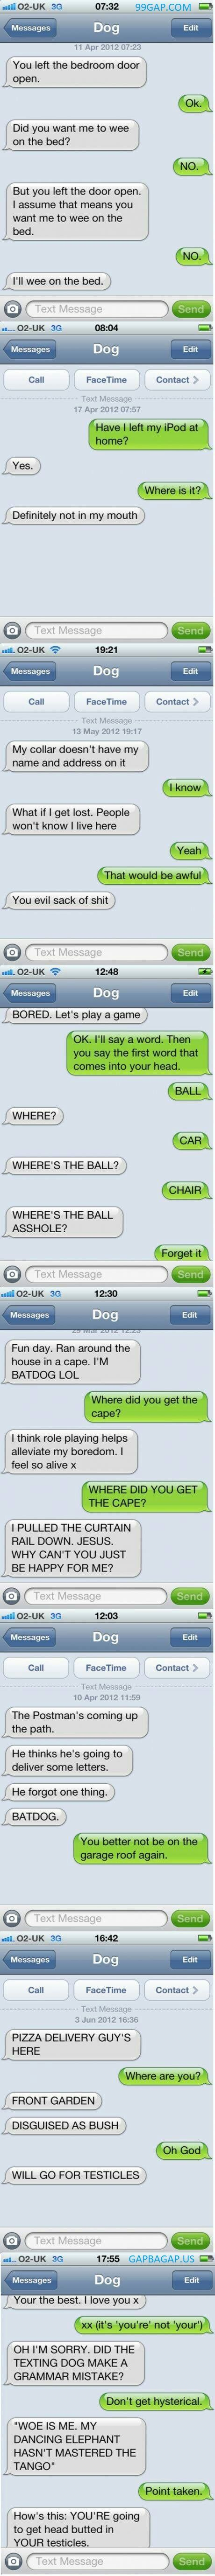 Top 8 #FunnyTexts Collection By Dogs #FunnyAnimals #FunnyDogs